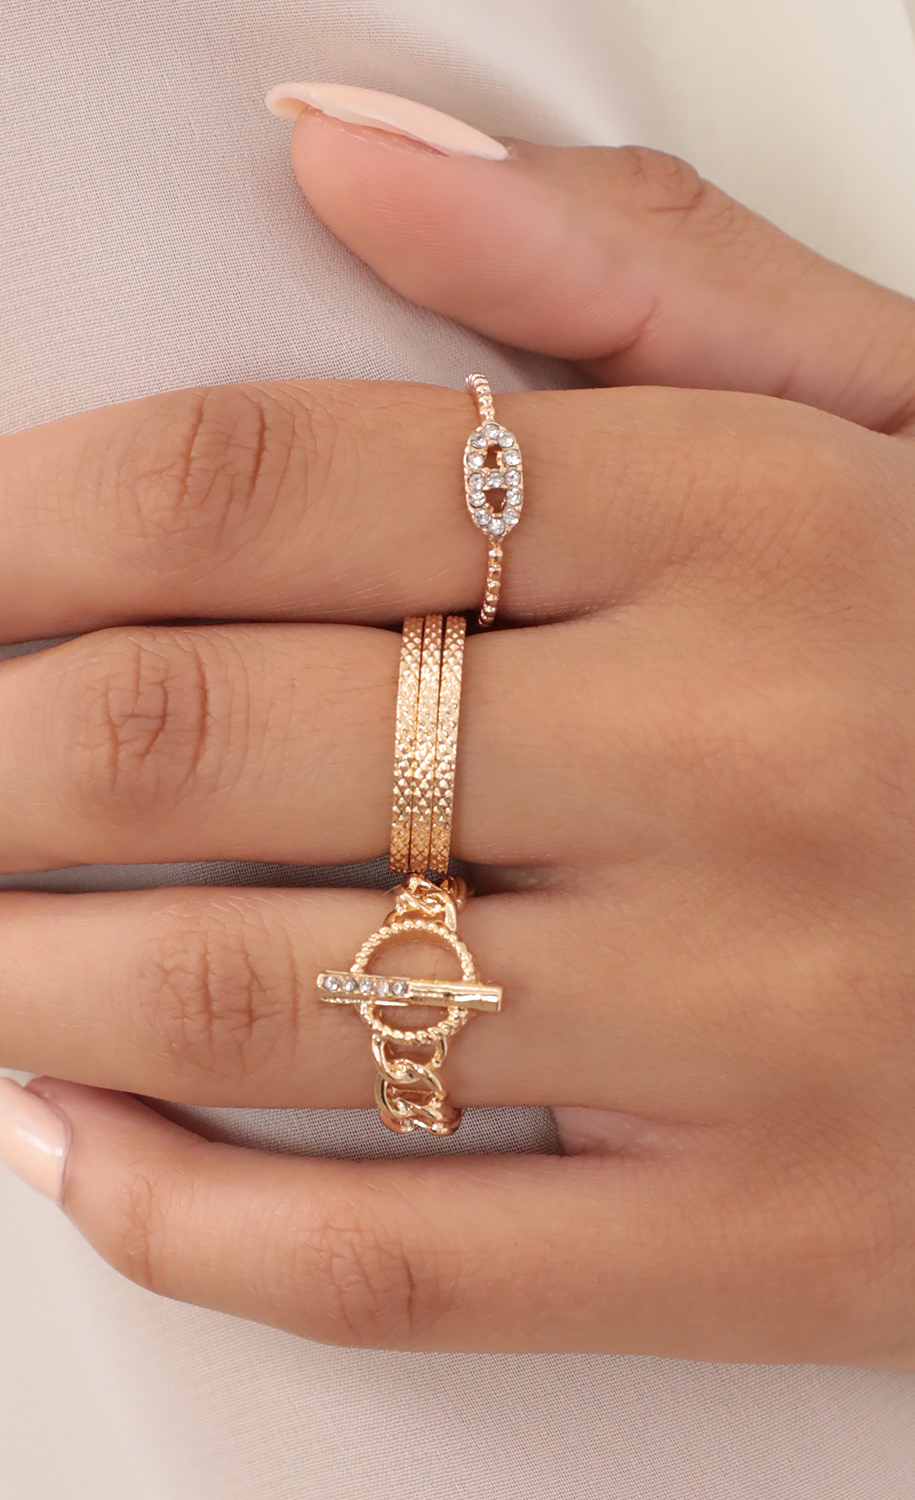 Toggle Clasp Ring Set in Gold